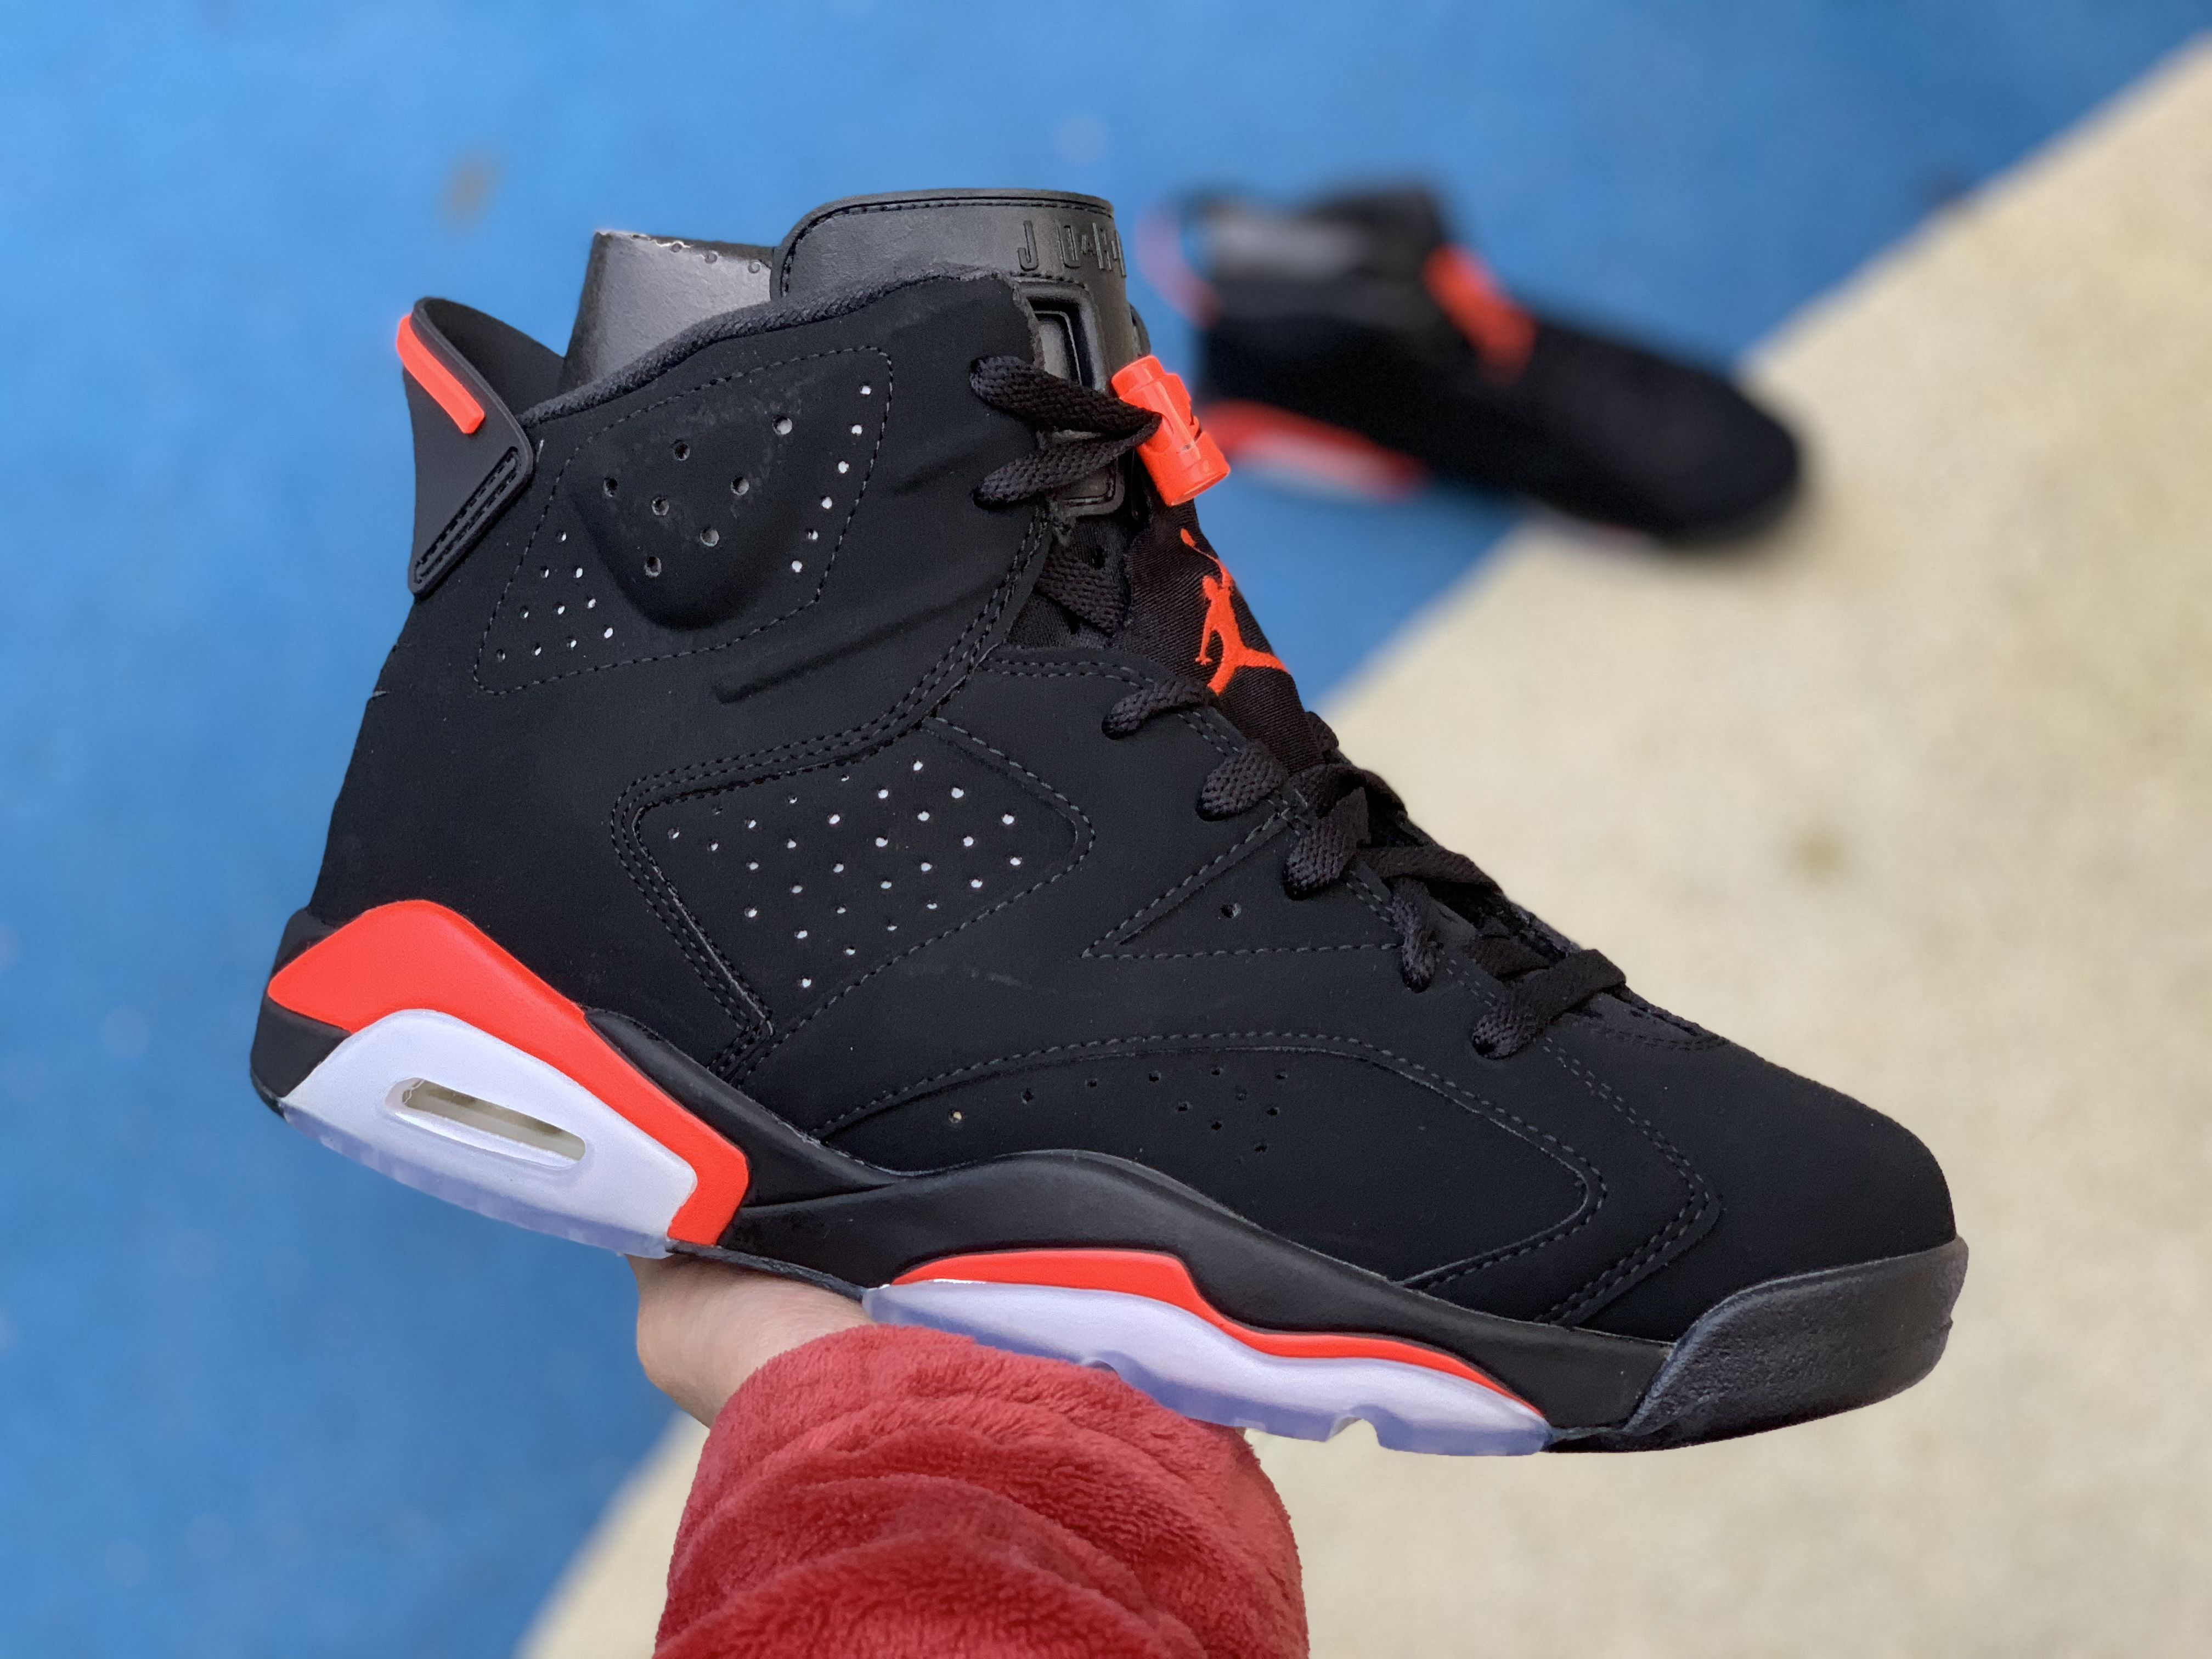 2cd585262de92 2019 Cheap Air Jordan 6 Retro Black Infrared 384664-060 in 2019 ...